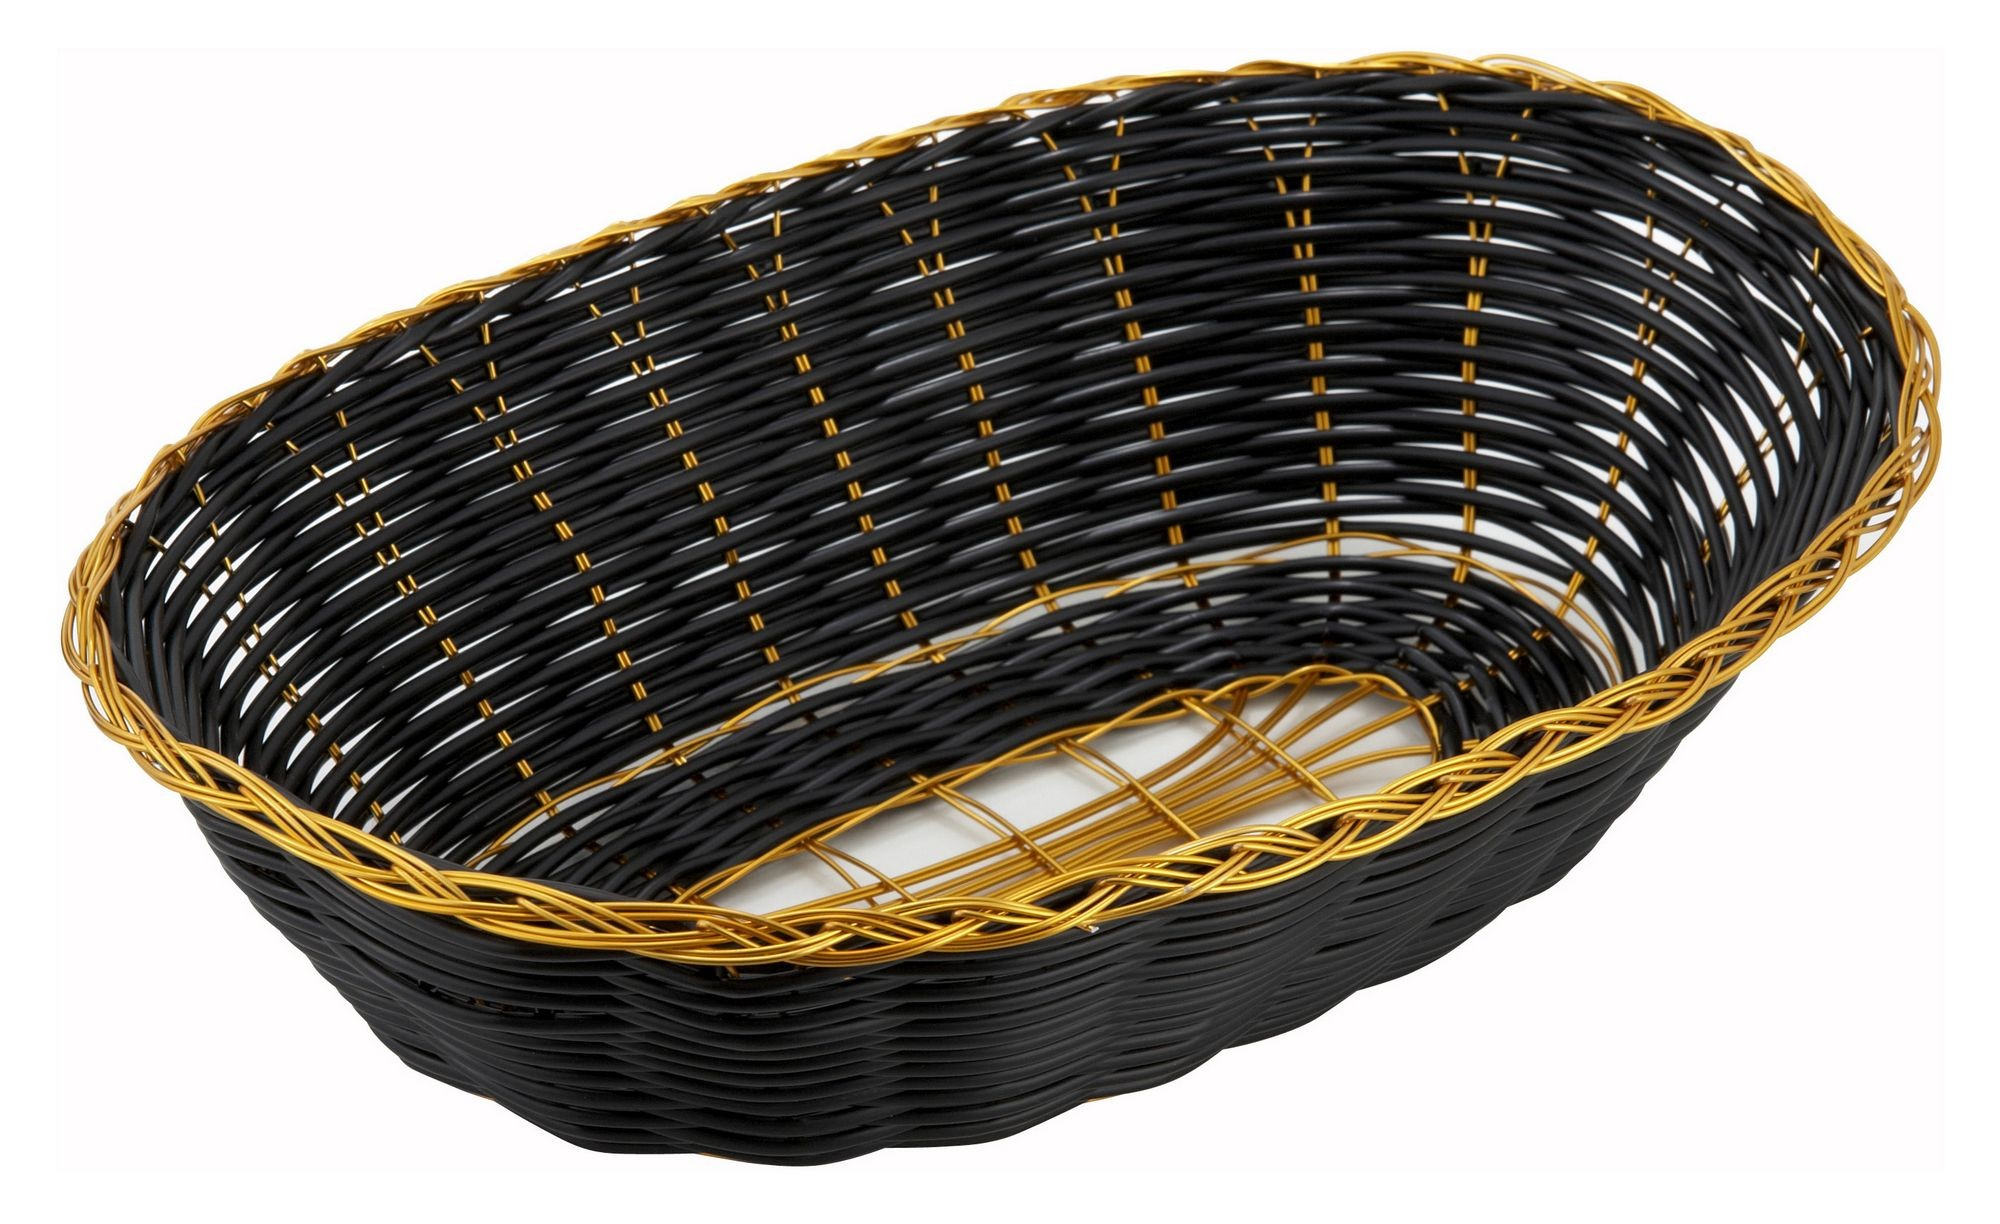 "Winco PWBK-9V Oval Black Poly Woven Basket with Gold Trim 9"" x 7"" x 2-3/4"""